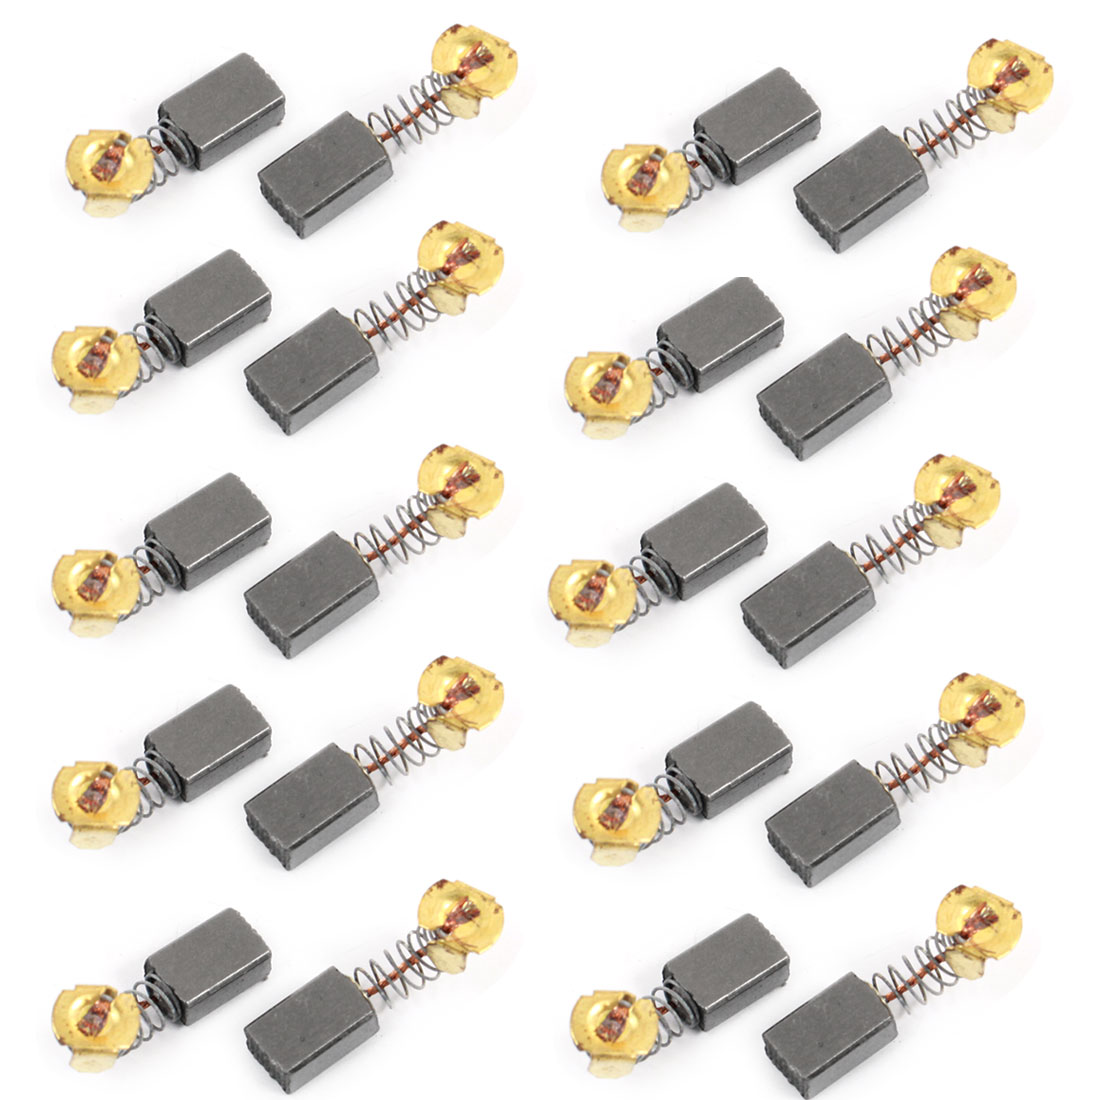 20 Pcs Spare Part Electric Drill Motor 14mm x 8mm x 7mm CB51 Carbon Brushes